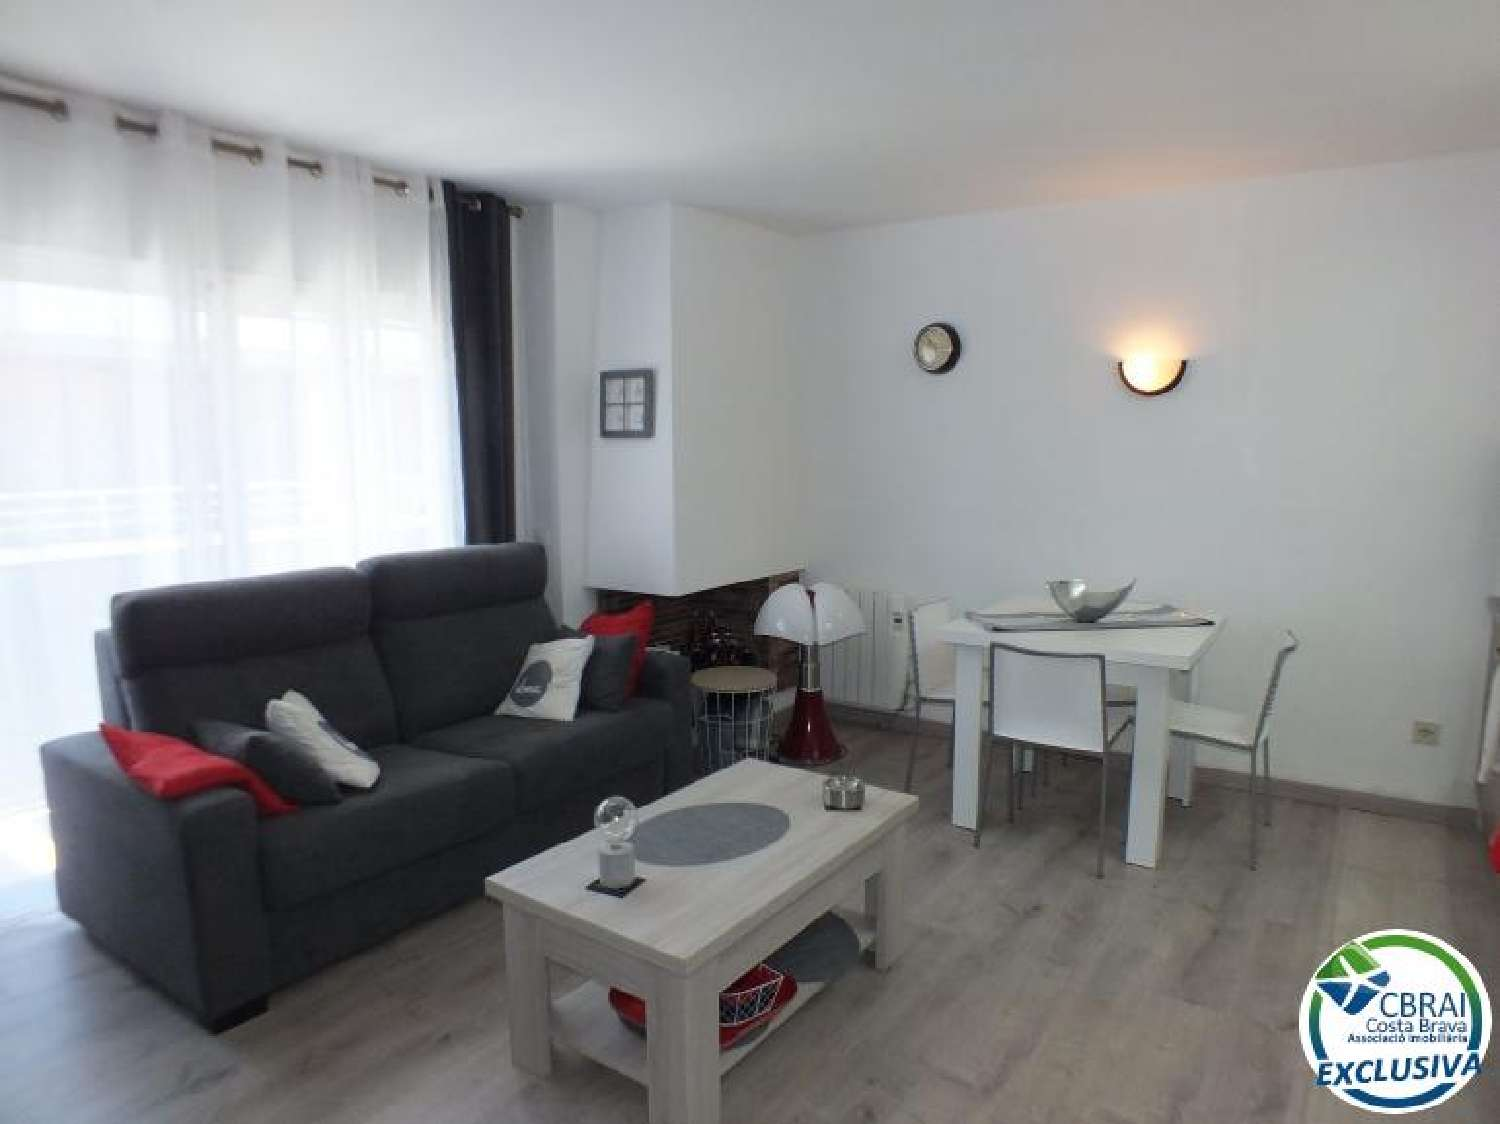 roses girona appartement foto 4645945